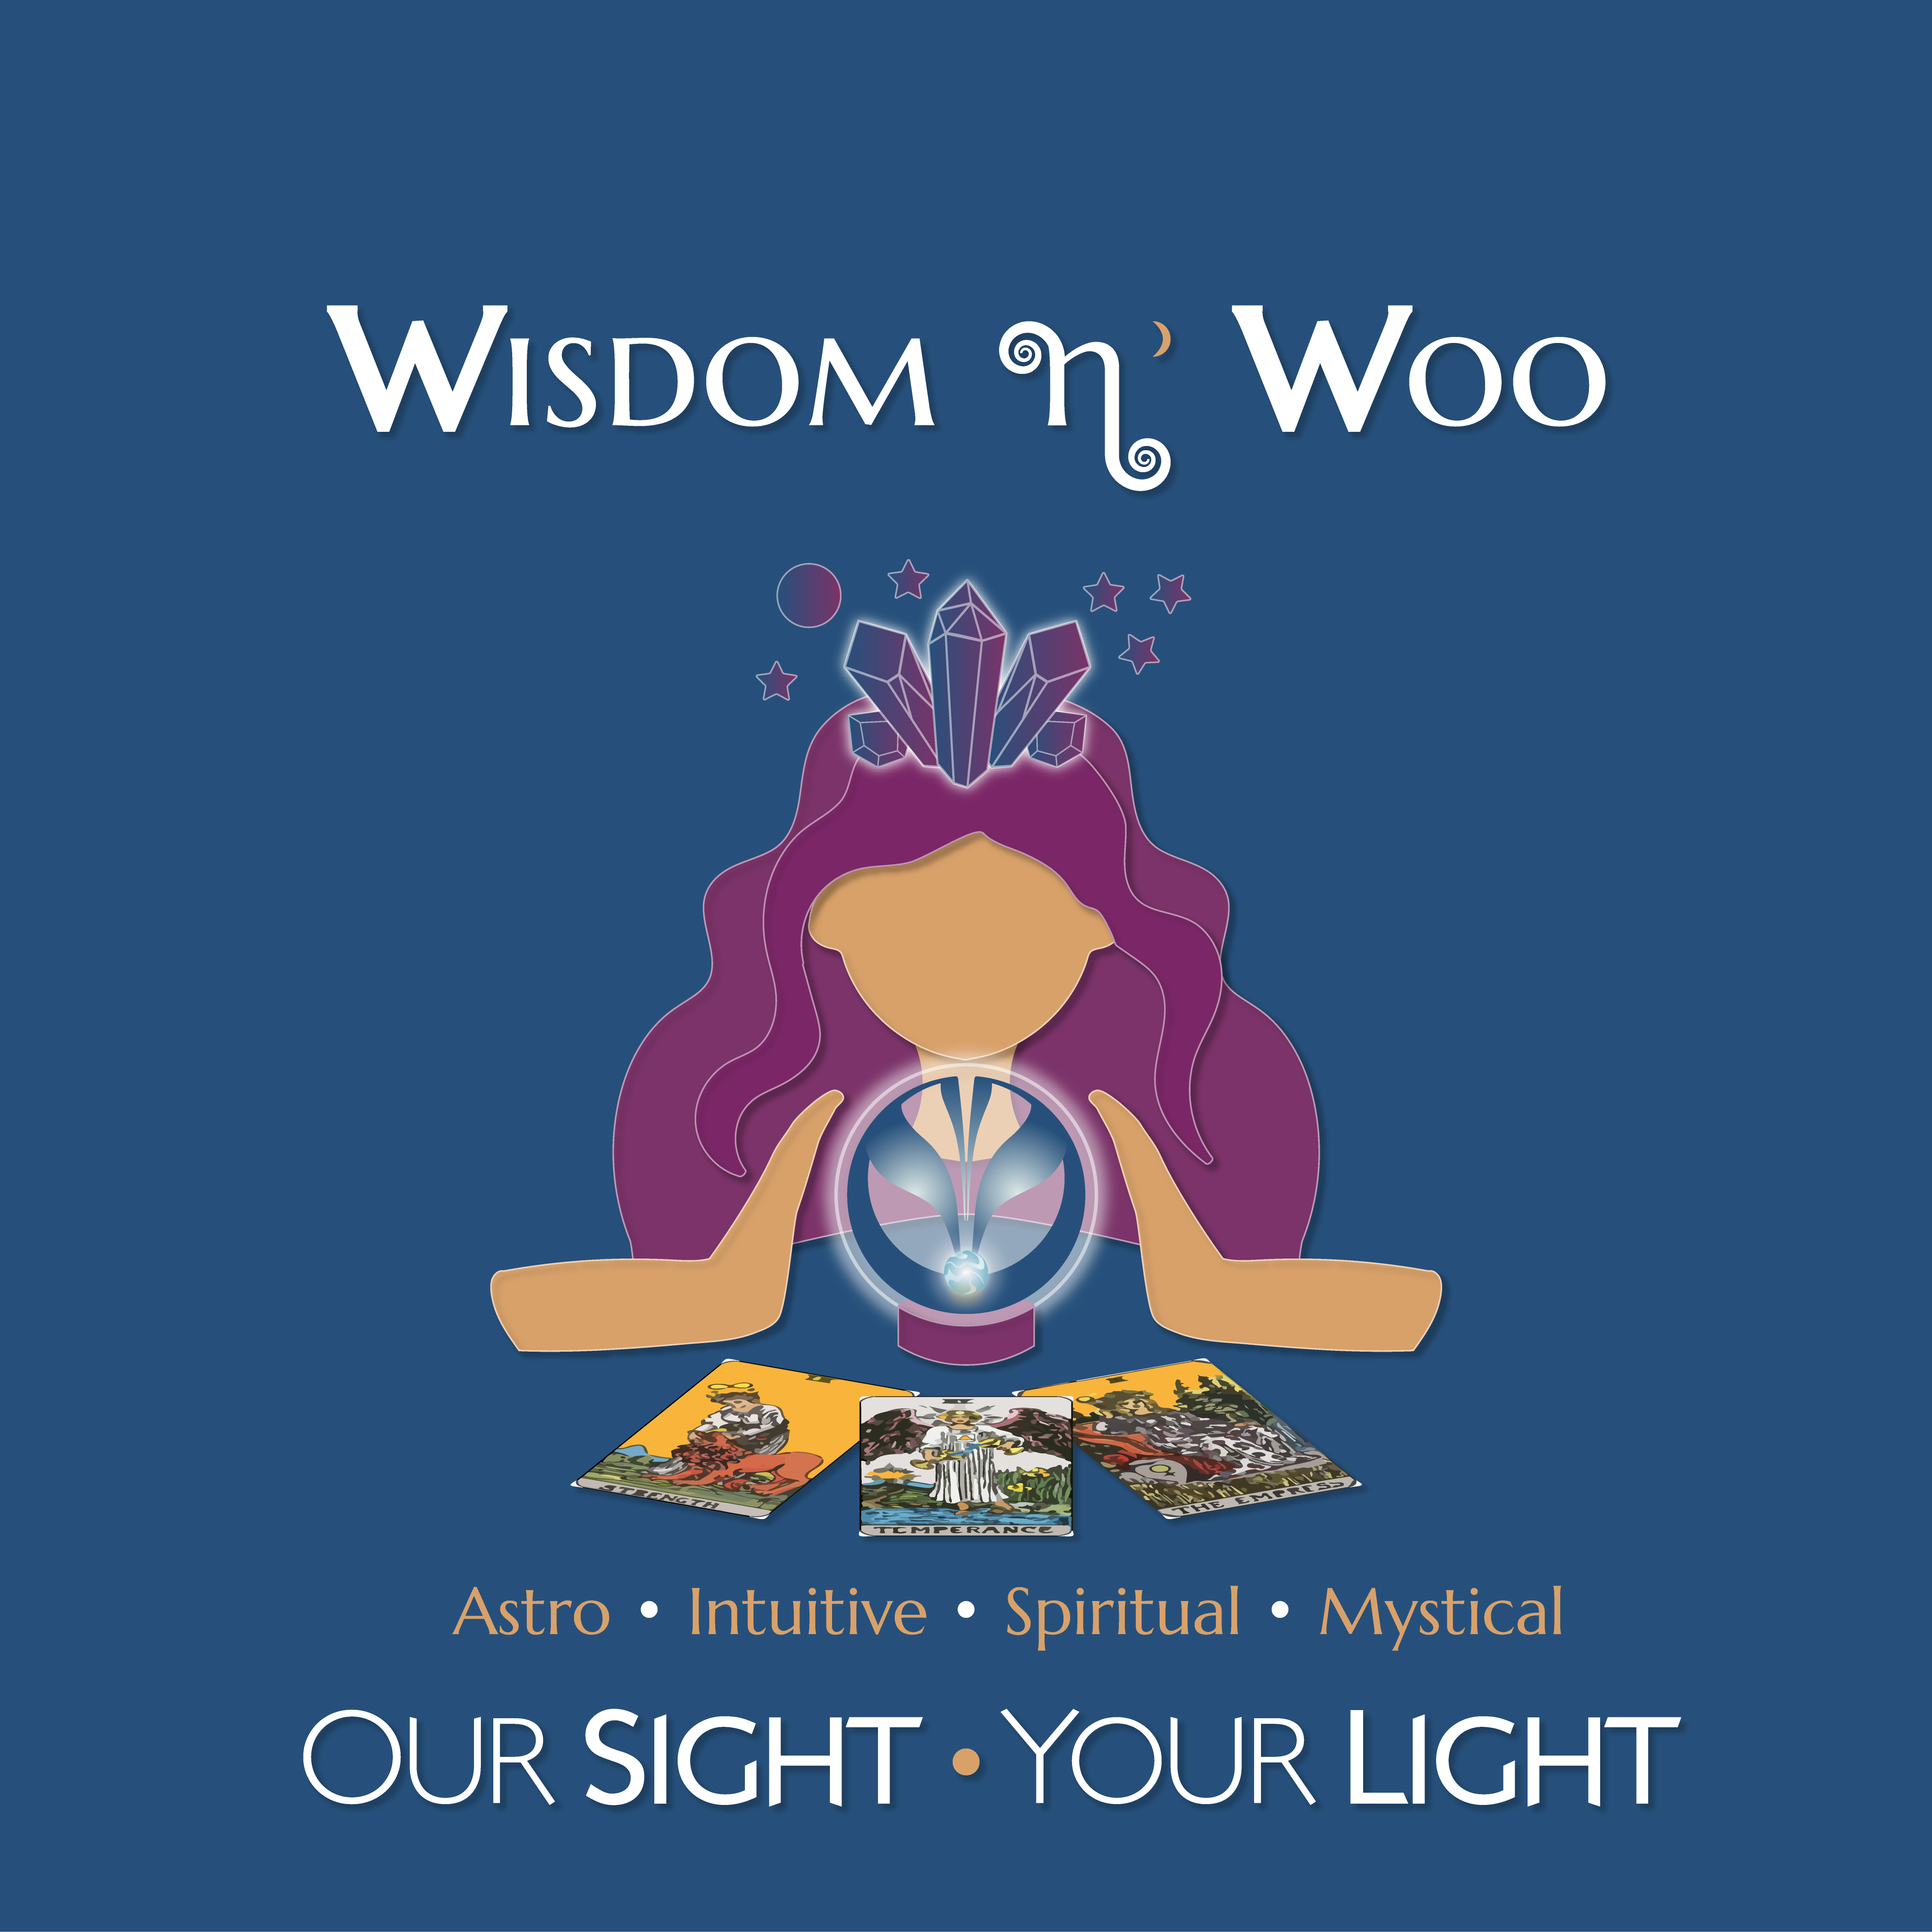 Our Sight Your Light